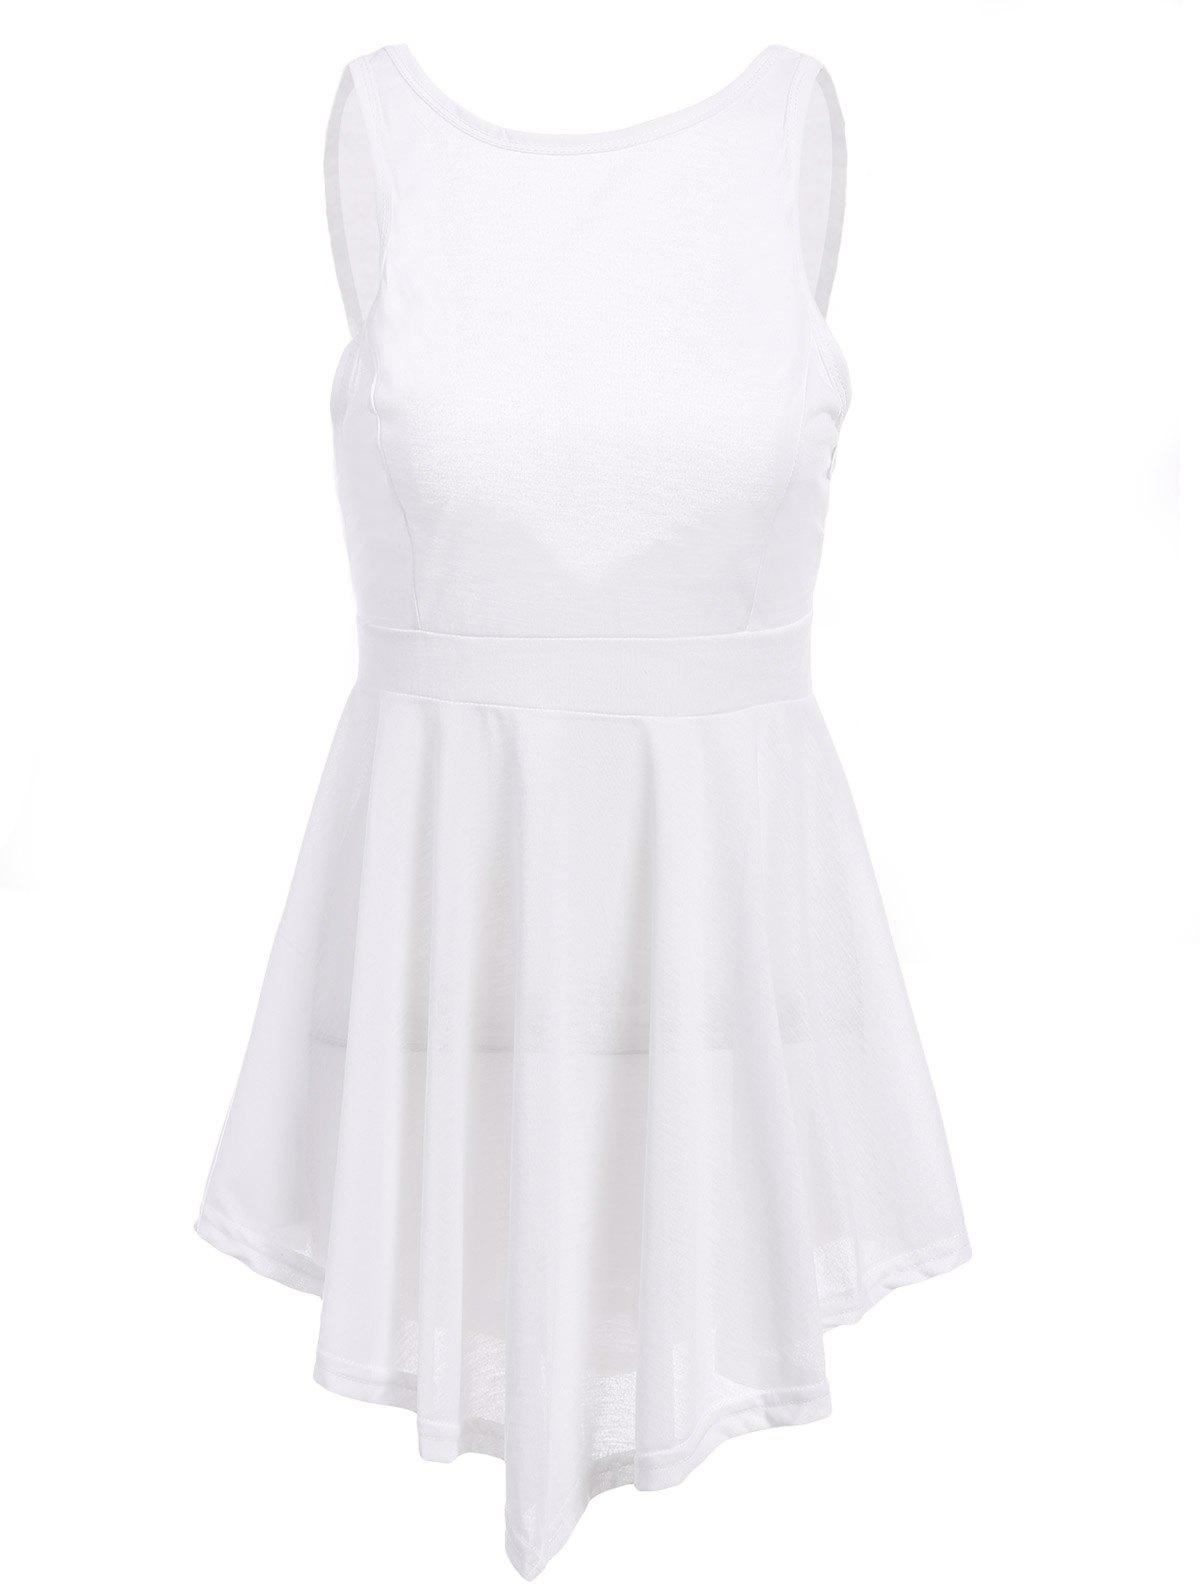 Fashionable Sleeveless Round Collar Solid Color Backless Women's Dress - WHITE L